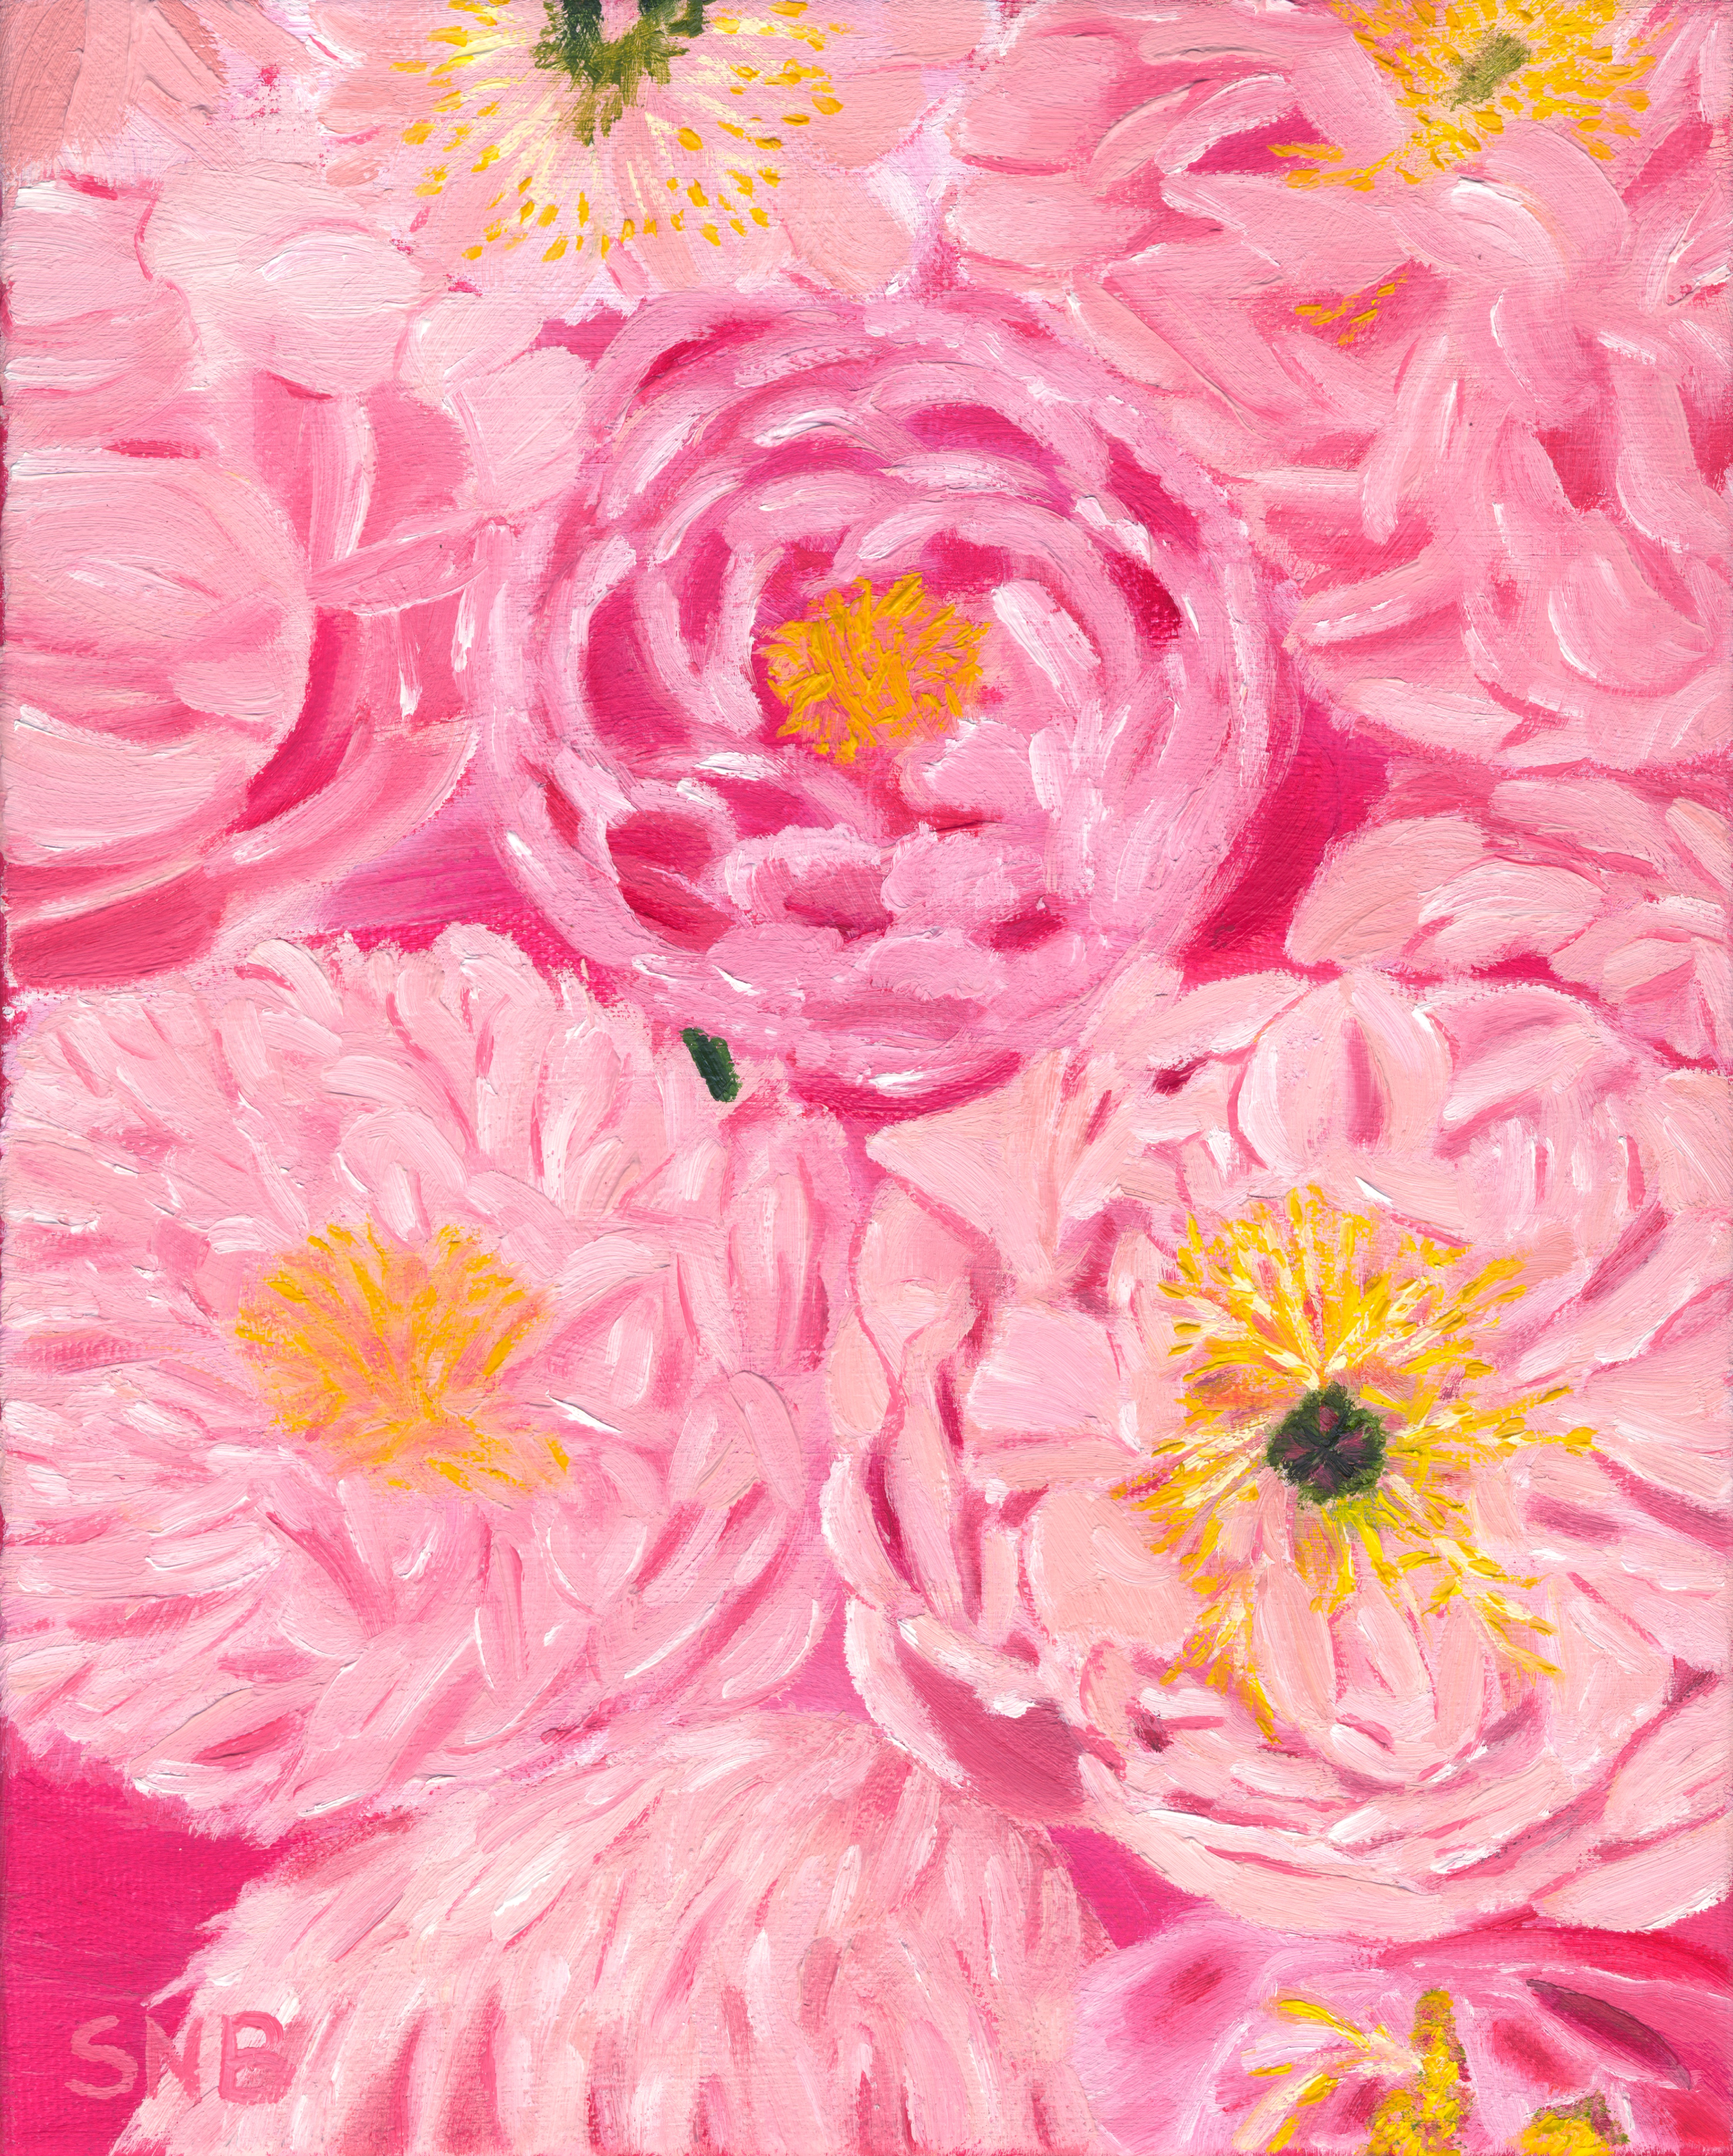 Pink Peonies, a 8 x 10 Oil Painting on Canvas. The Painting is of multiple pink peonies with yellowish centers of different varieties on a bright pink background